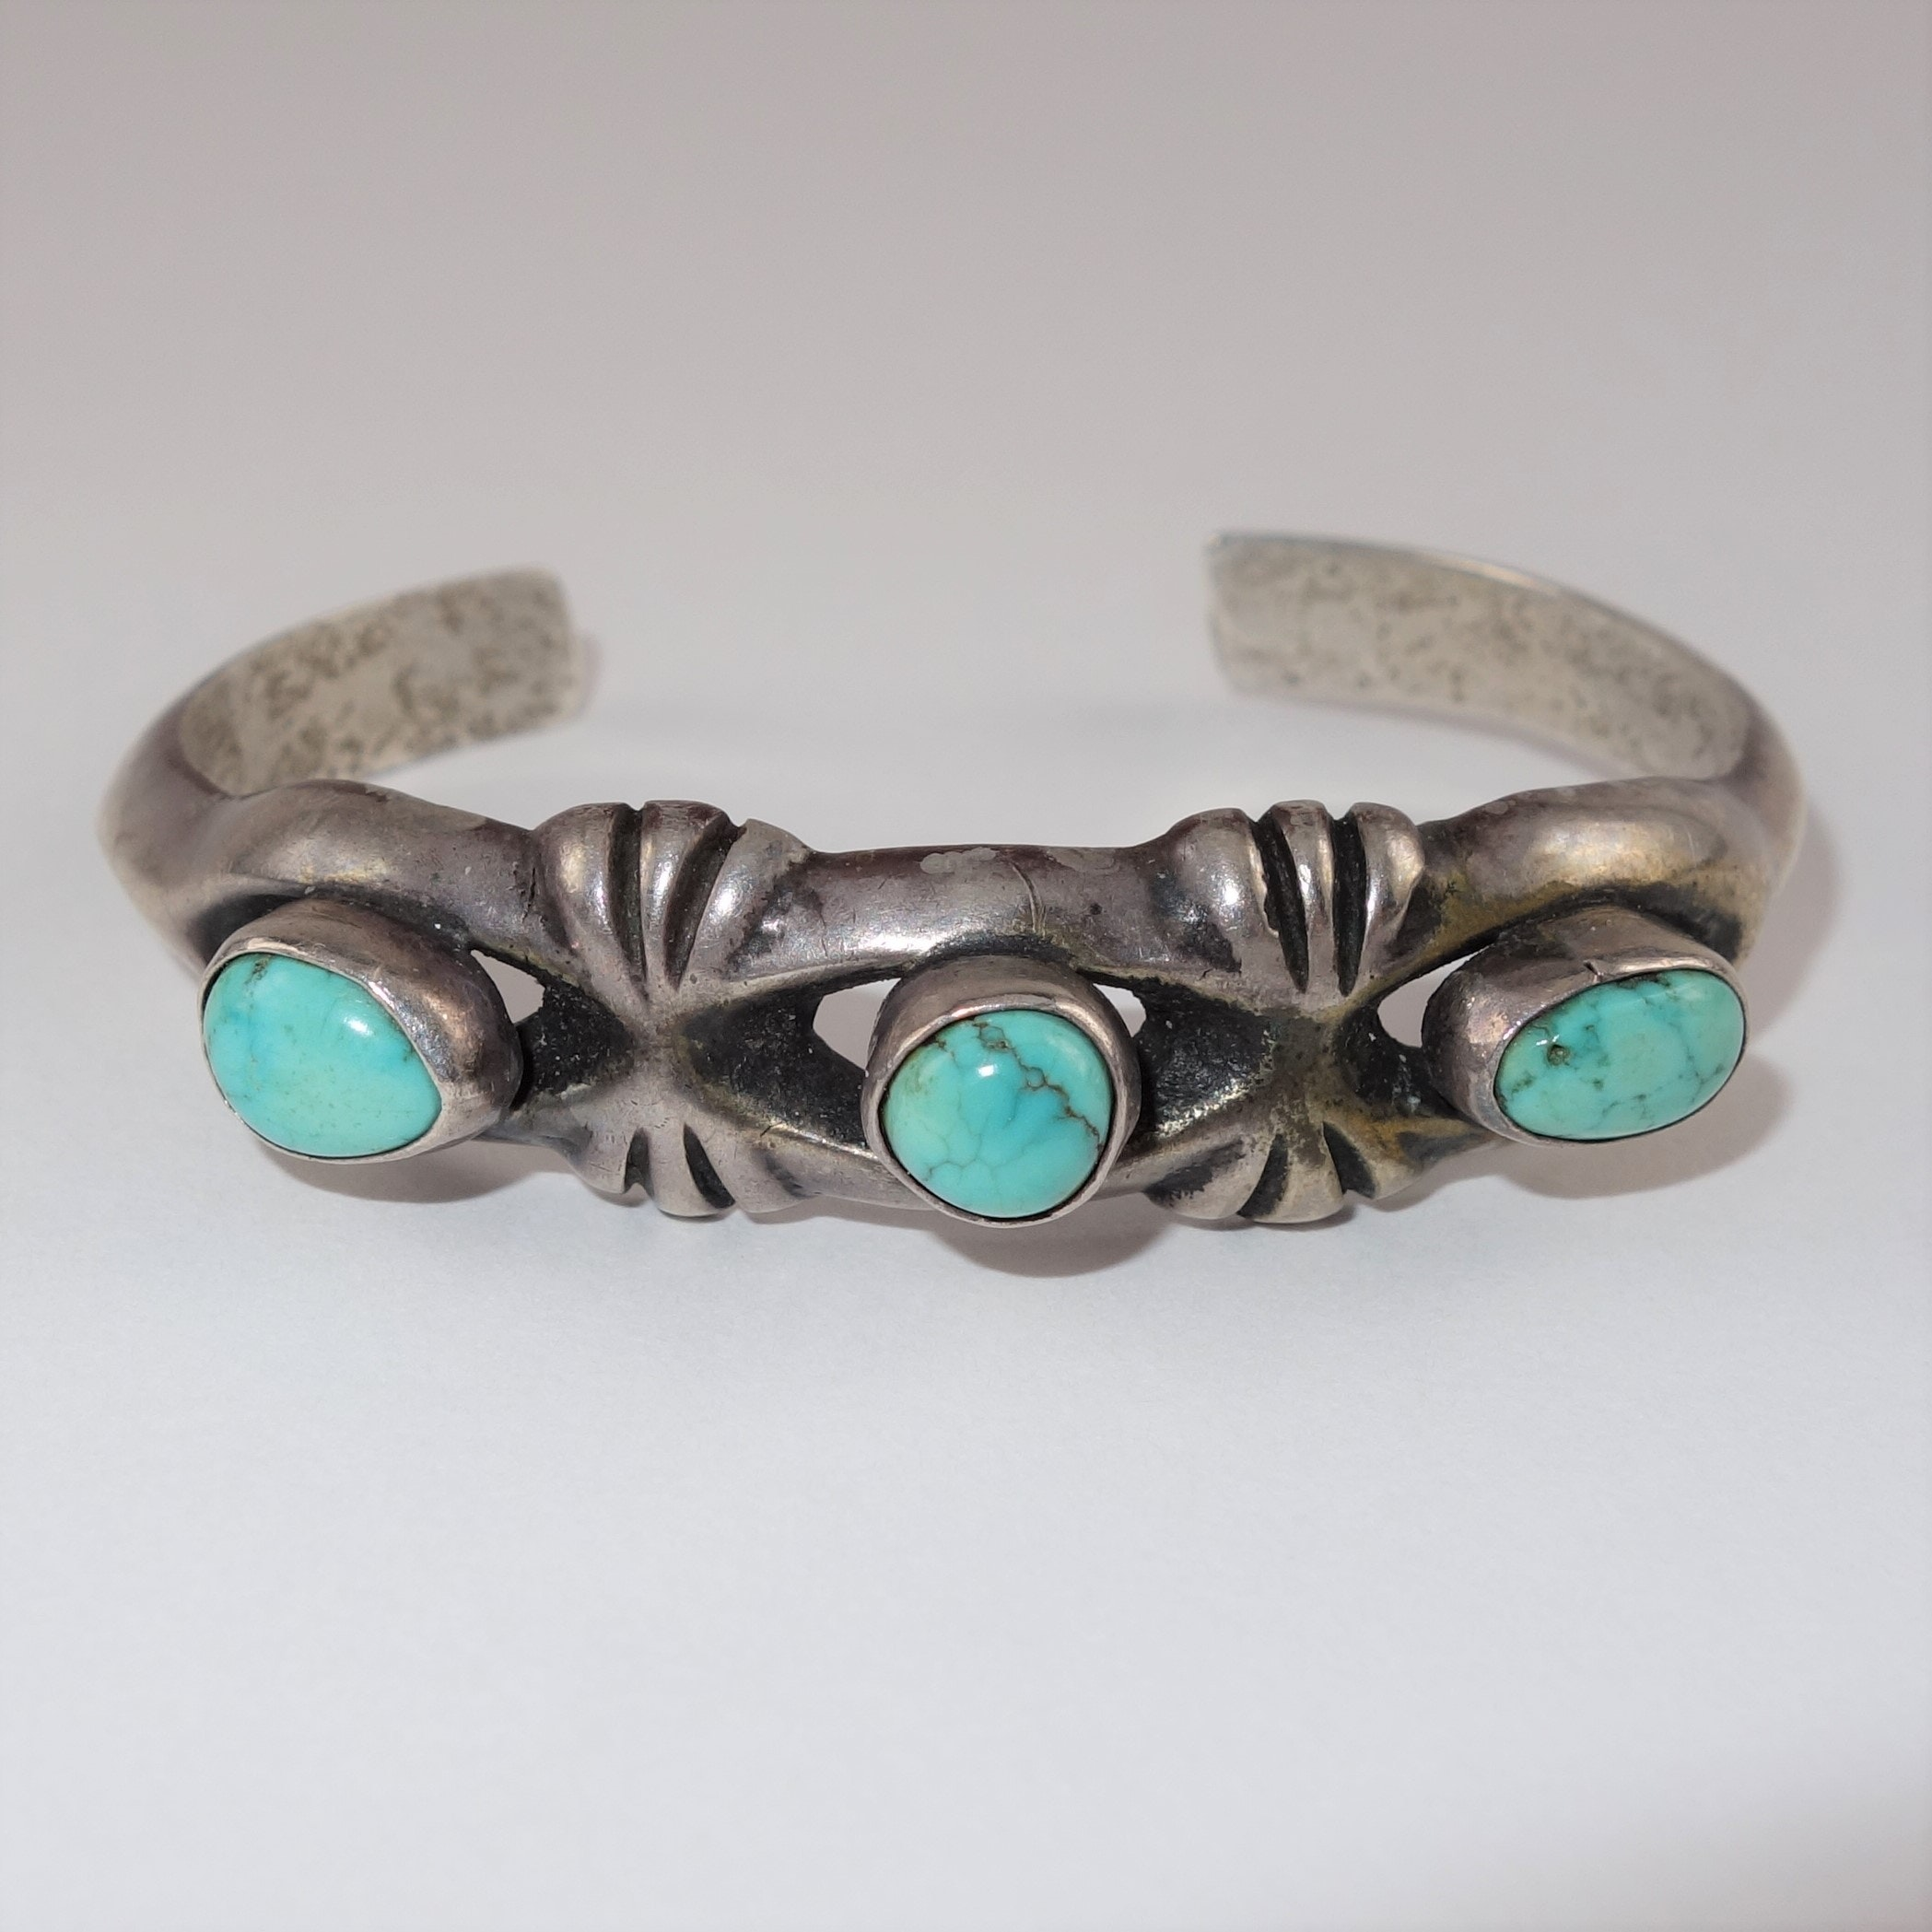 Native American Style Sandcast Sterling Turquoise Cuff Bracelet